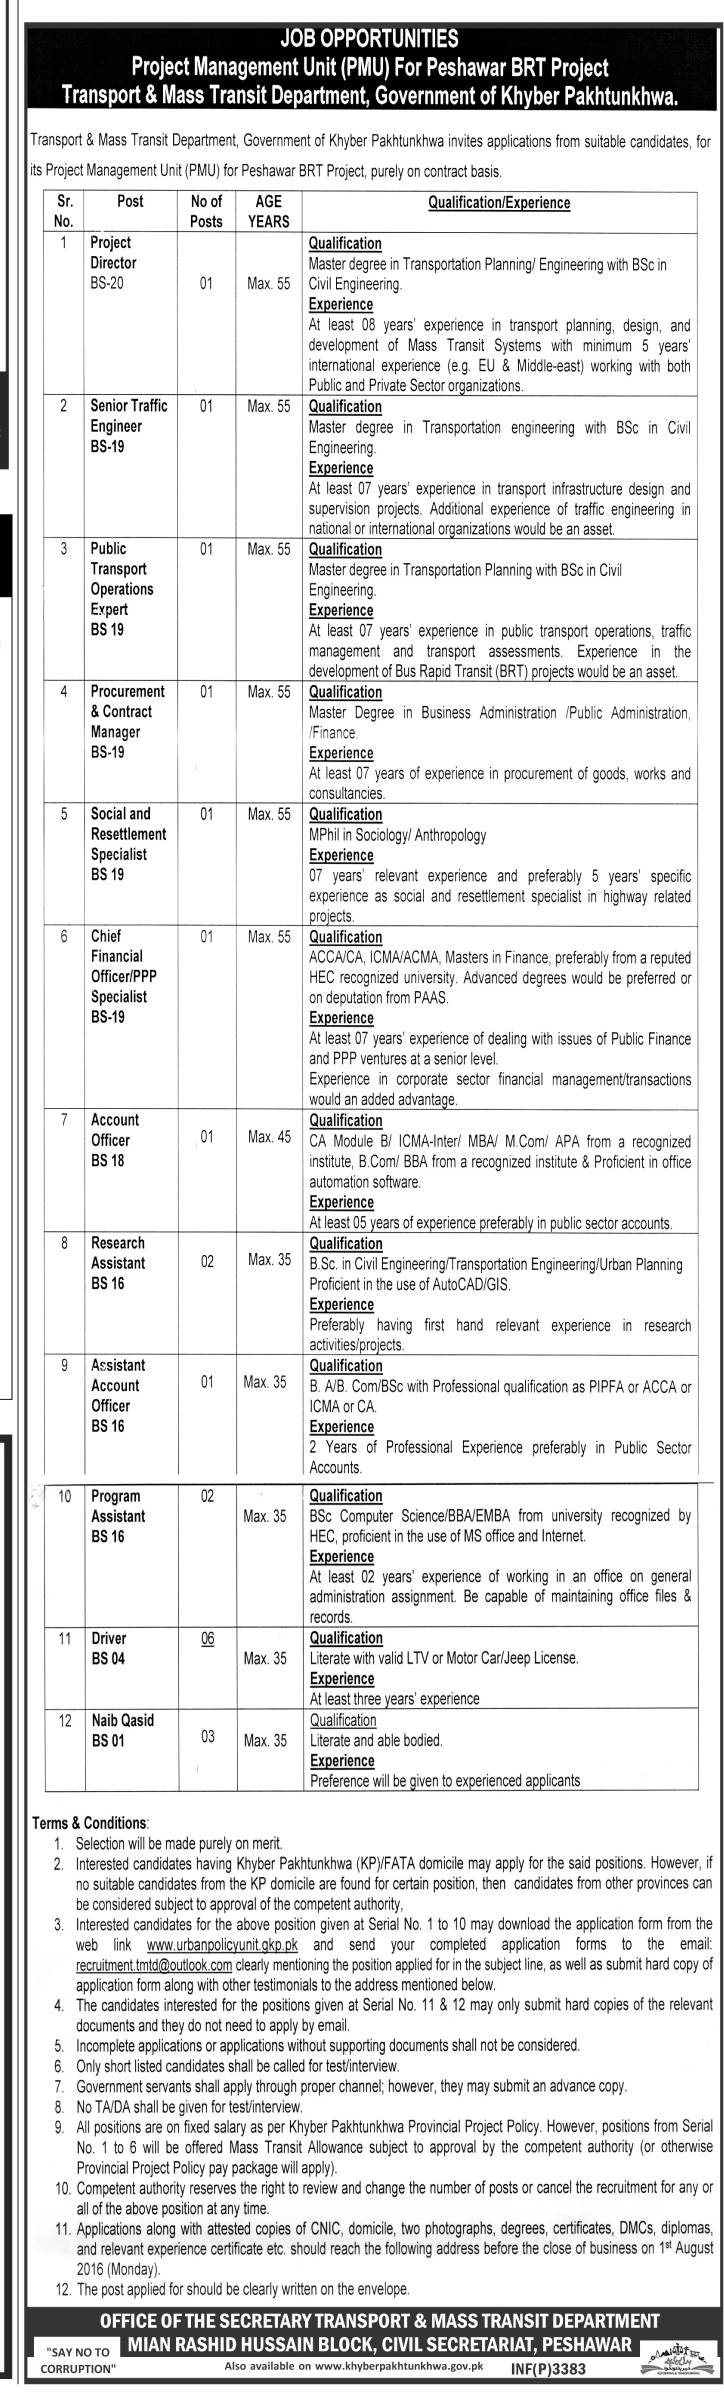 Transport and Mass Transit Department Government of KPK Jobs